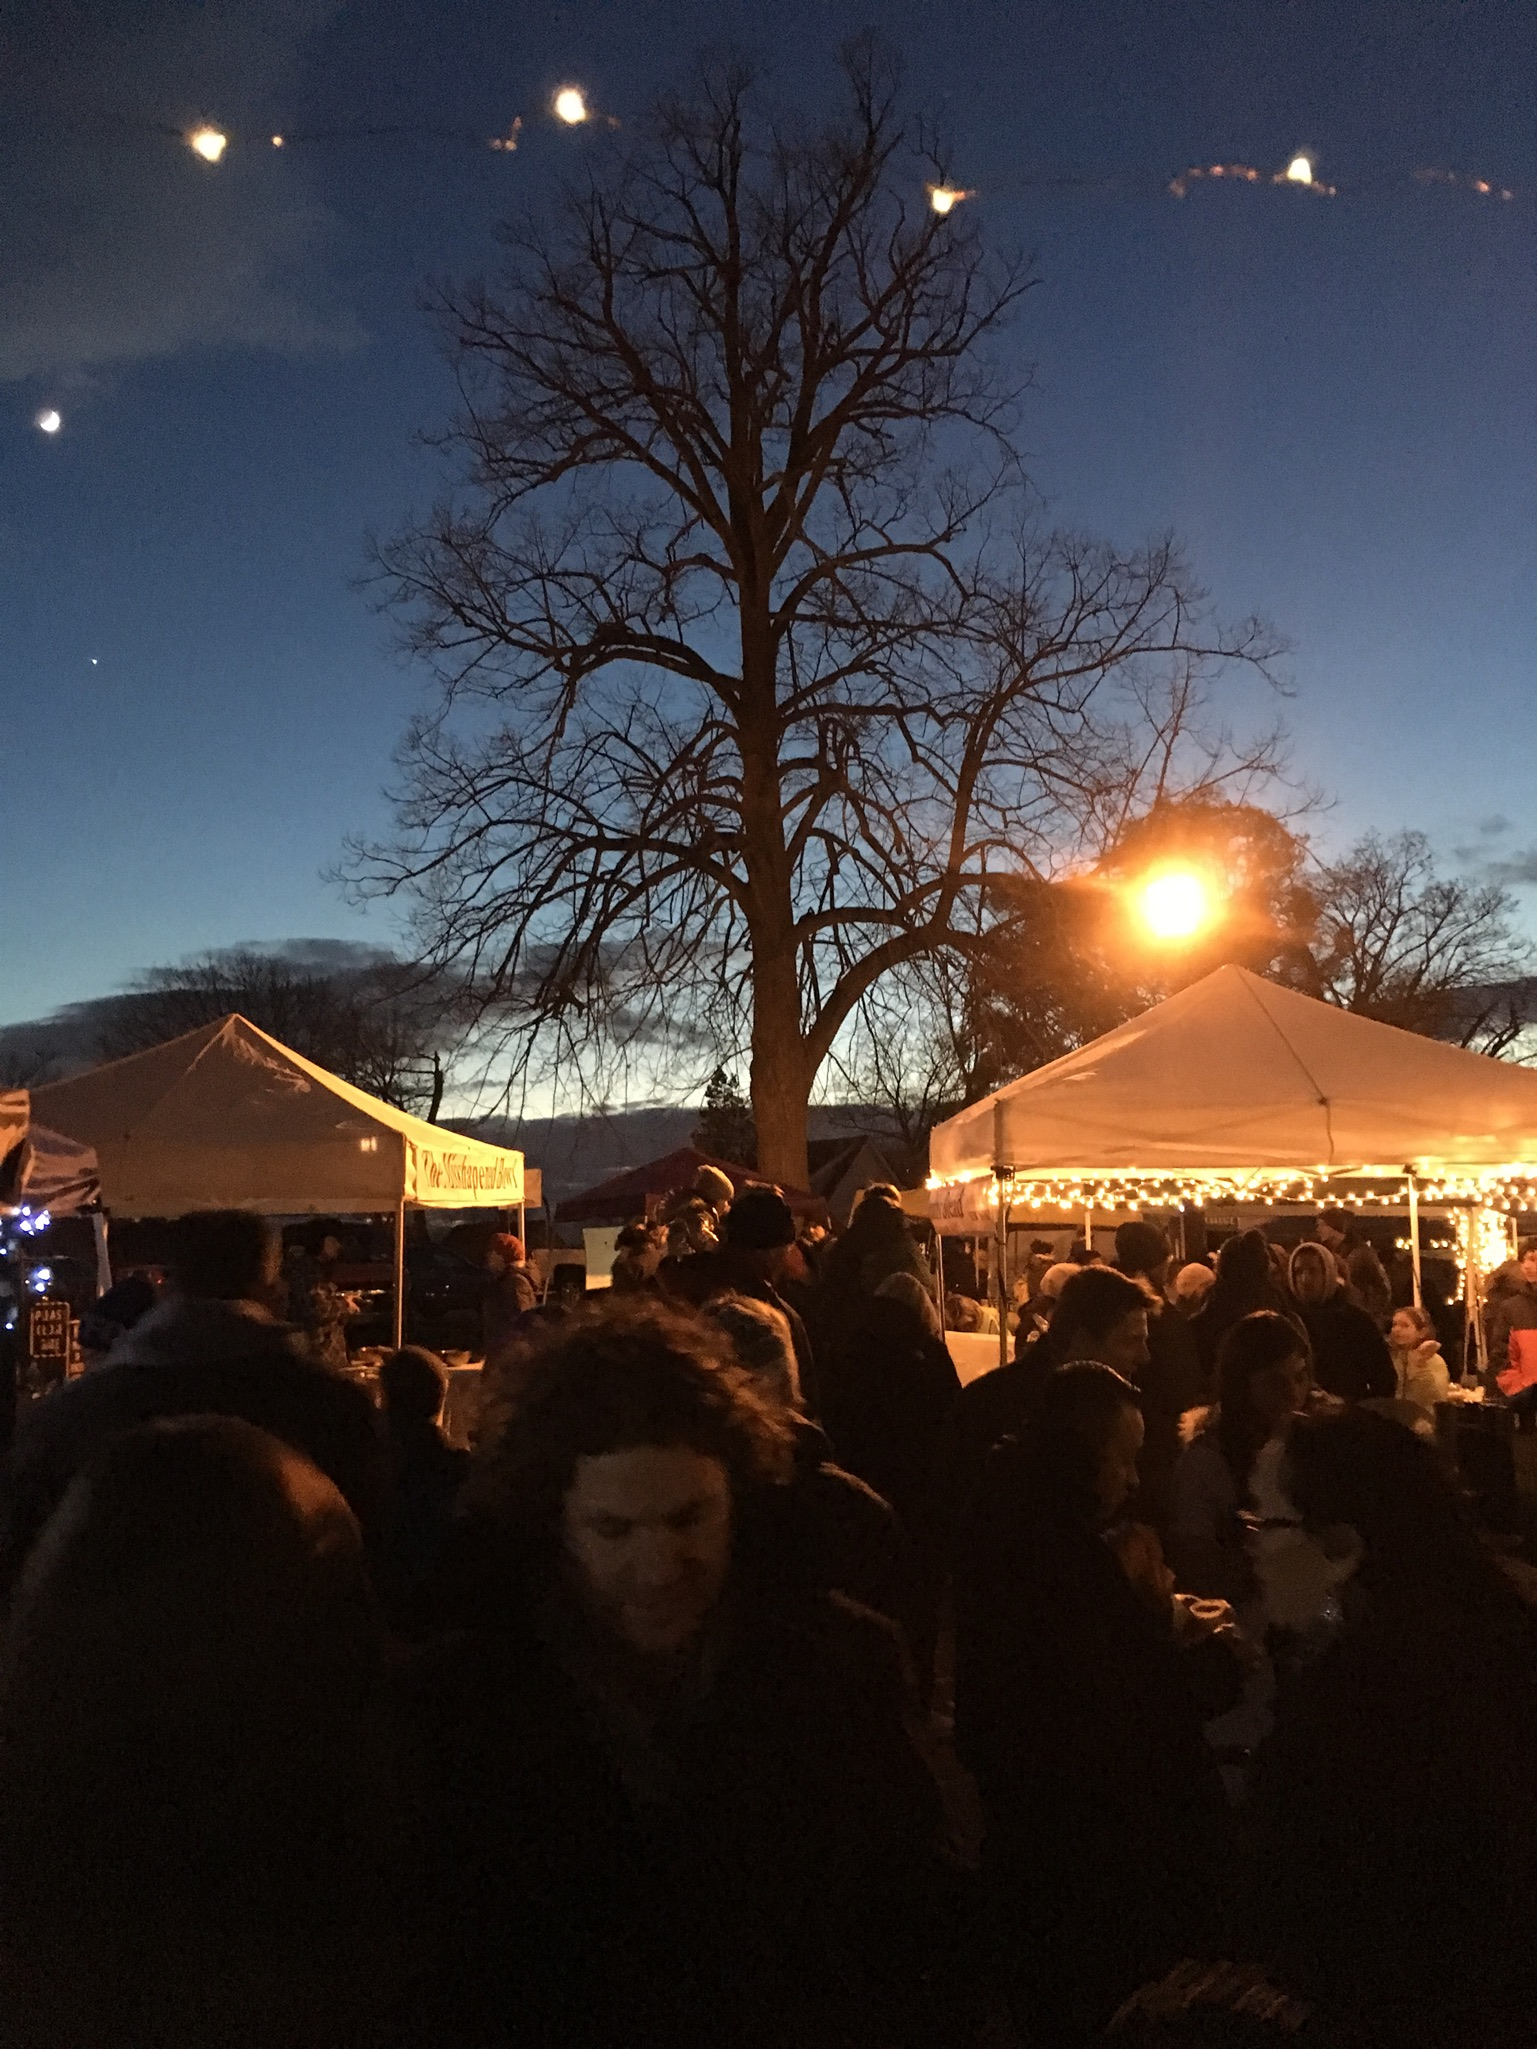 In December 2016, the TaSH held its first holiday pop-up market at the annual Tarrytown Tree Lighting Festival.